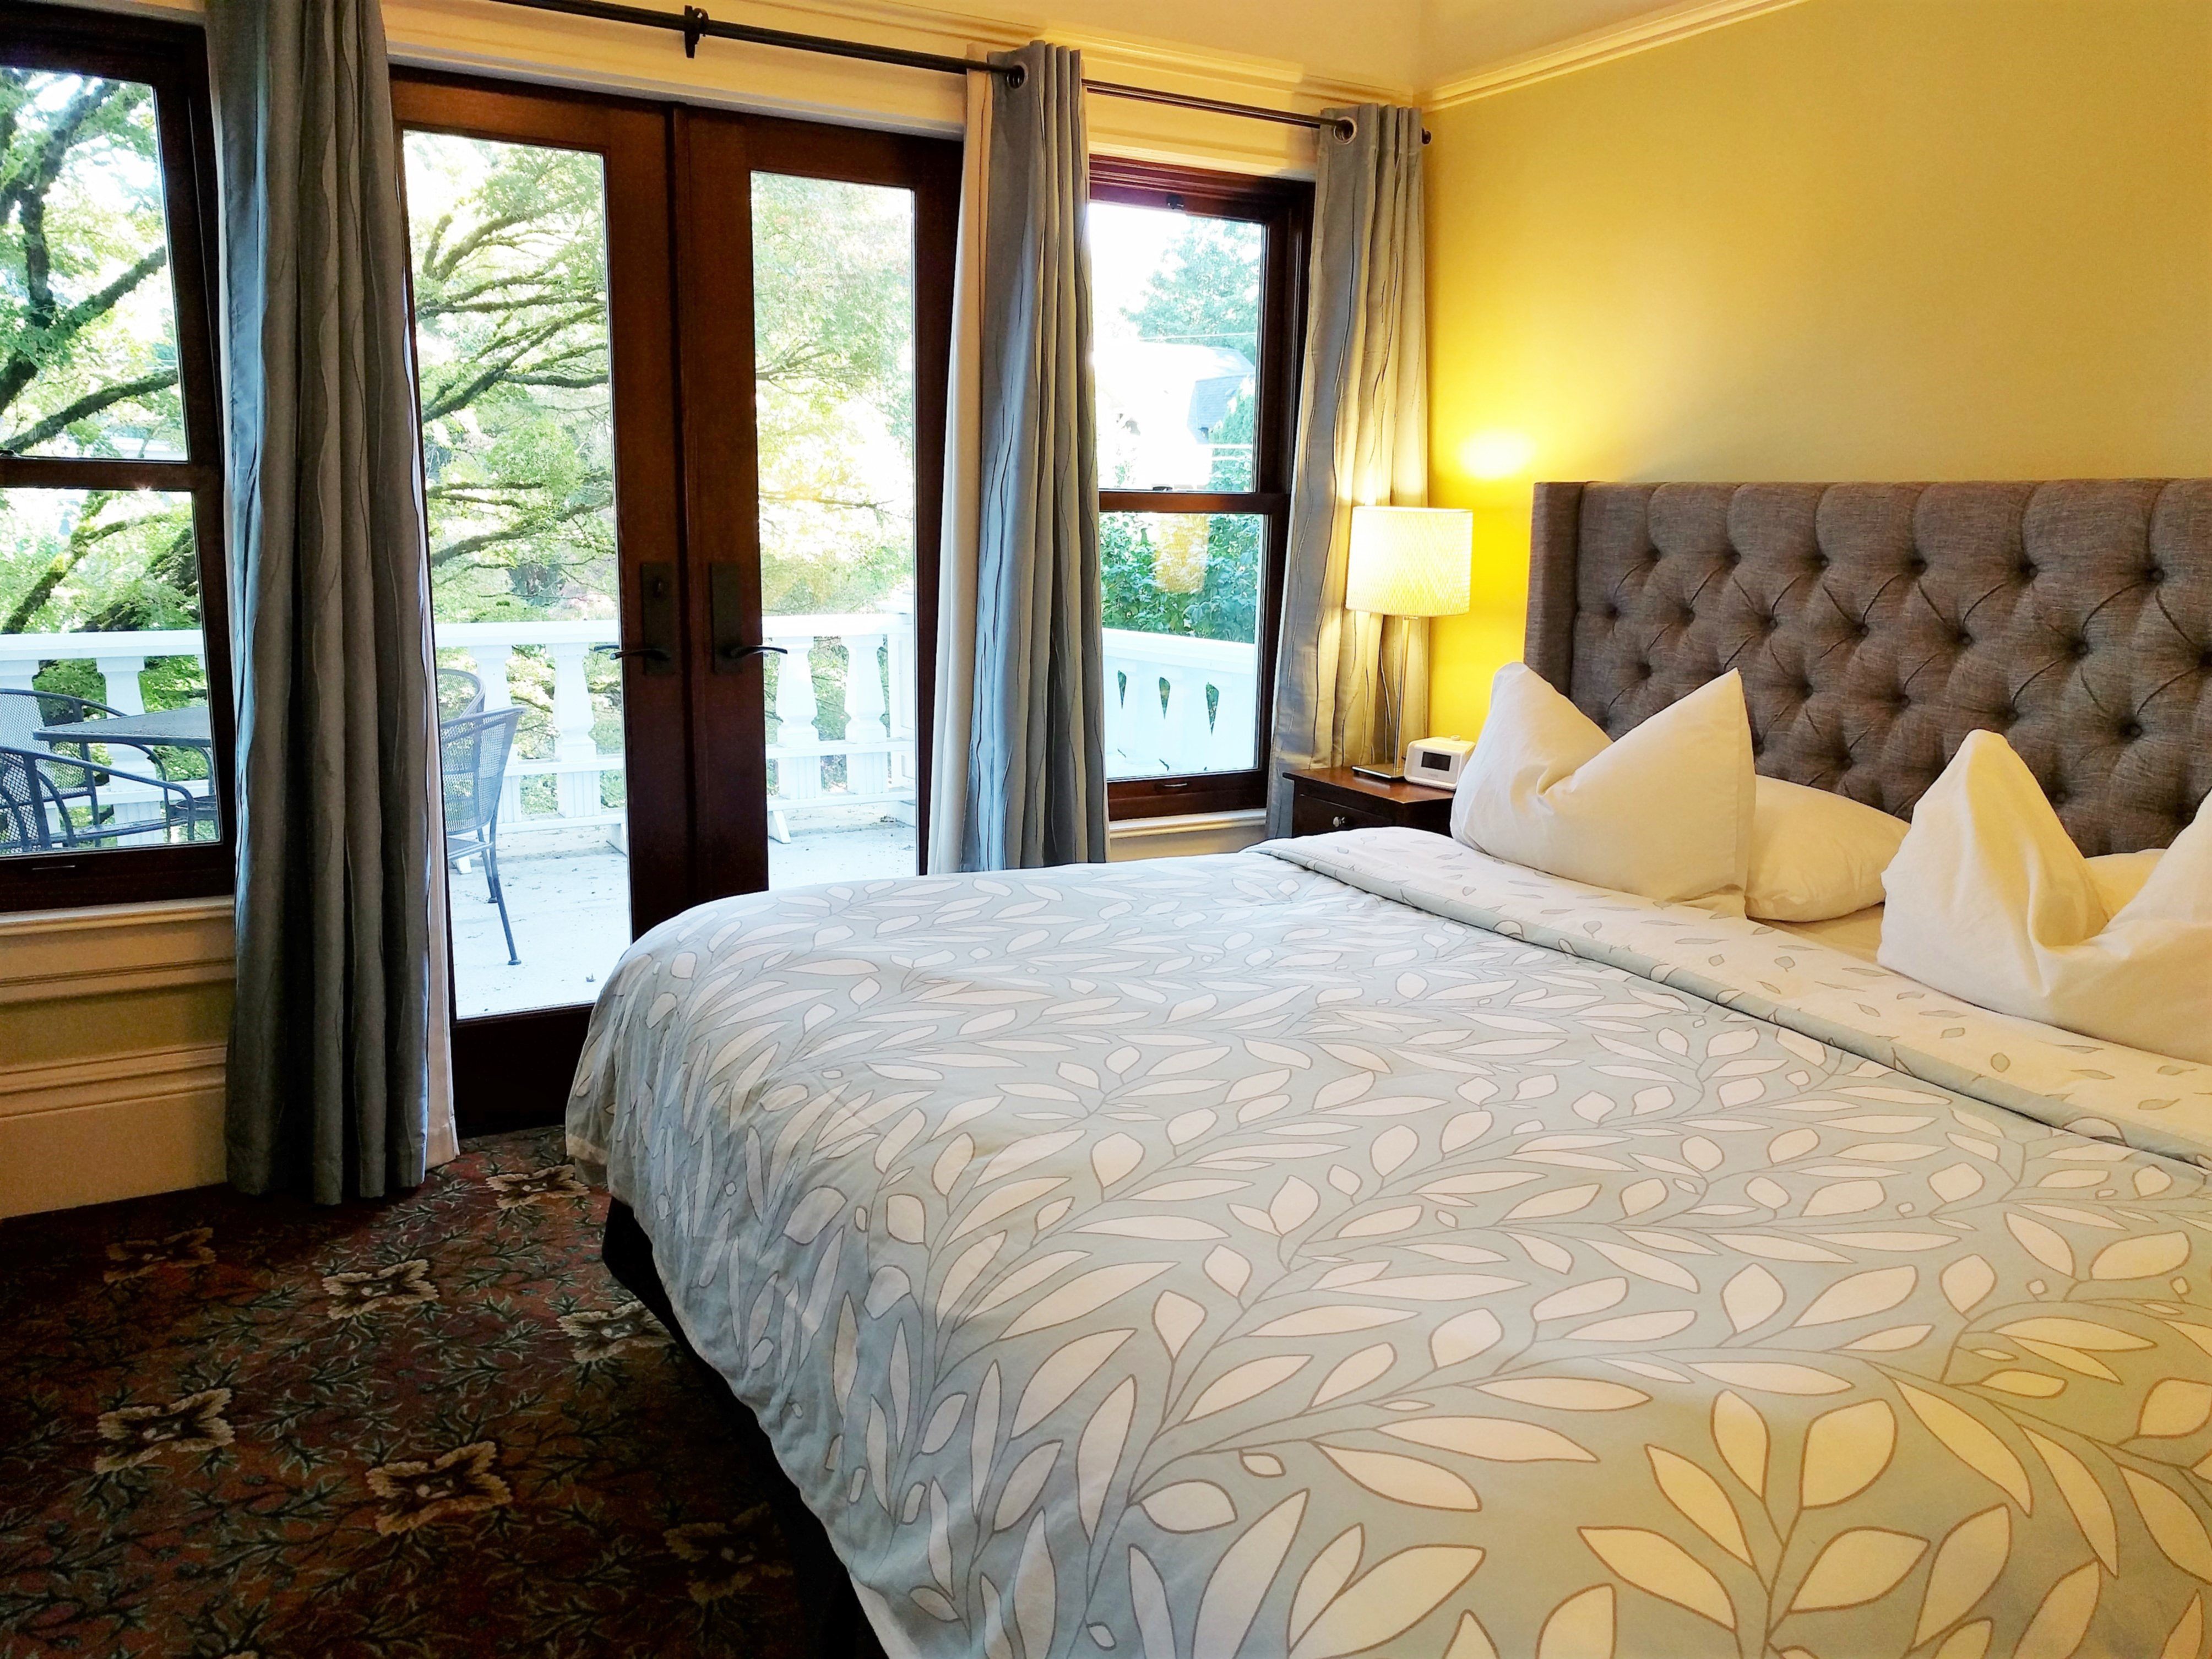 A bedroom with a large bed sitting next to a window at Evermore Guesthouse - Division Inns.